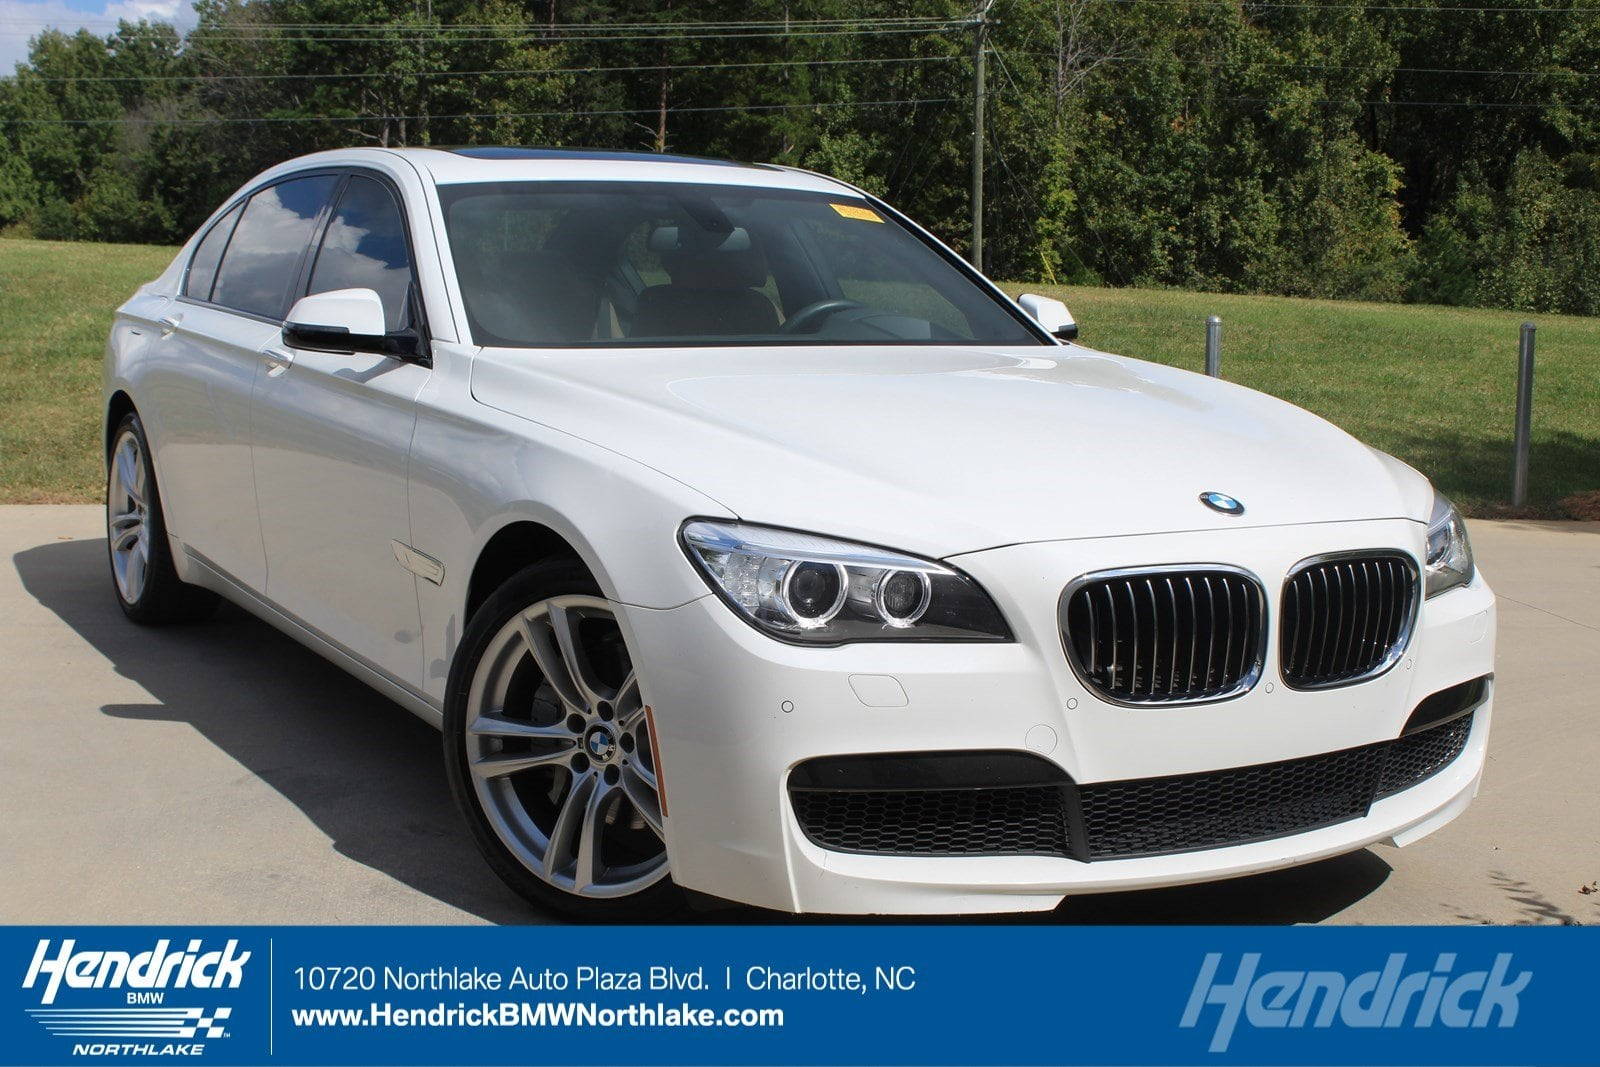 Photo 2015 BMW 7 Series 740LI XDRIVE Sedan in Franklin, TN